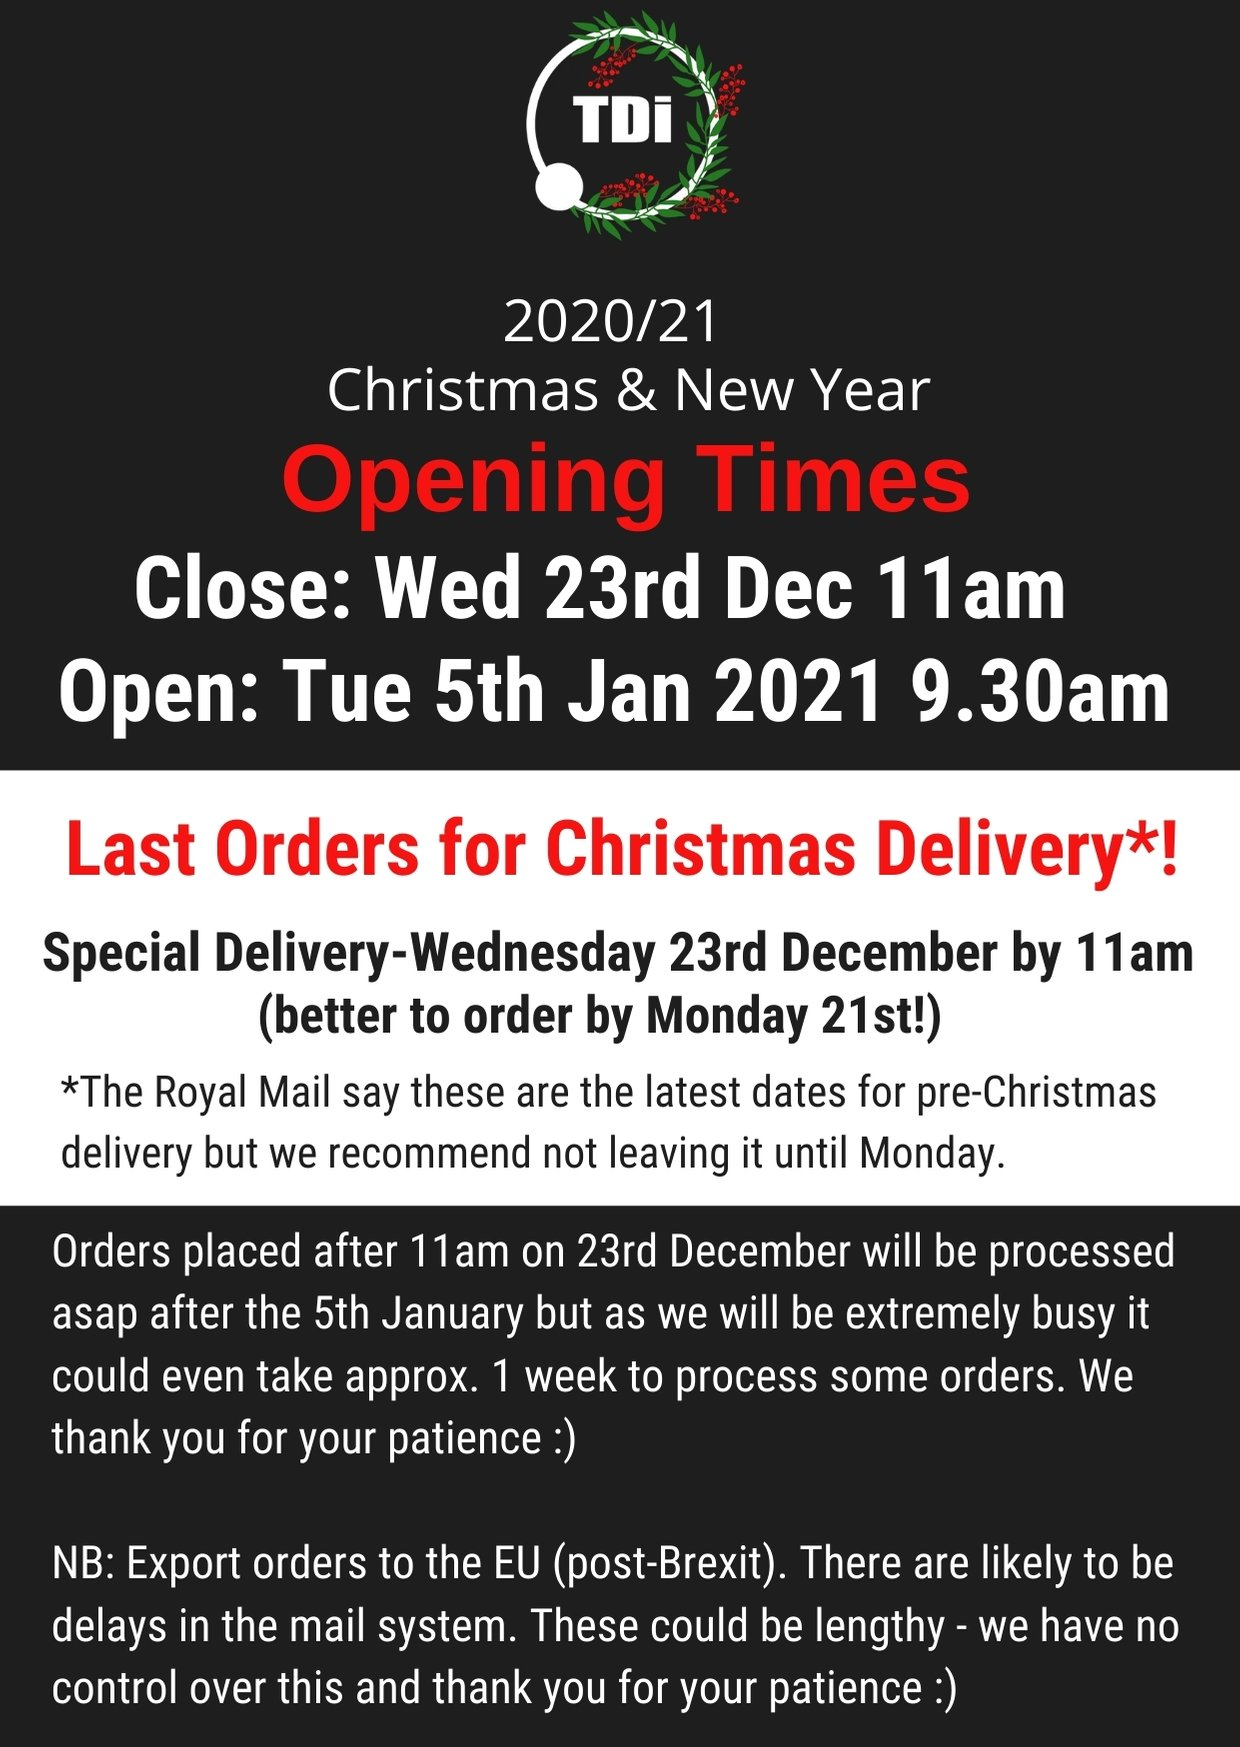 TDi Body Jewellery 2020 Christmas opening times